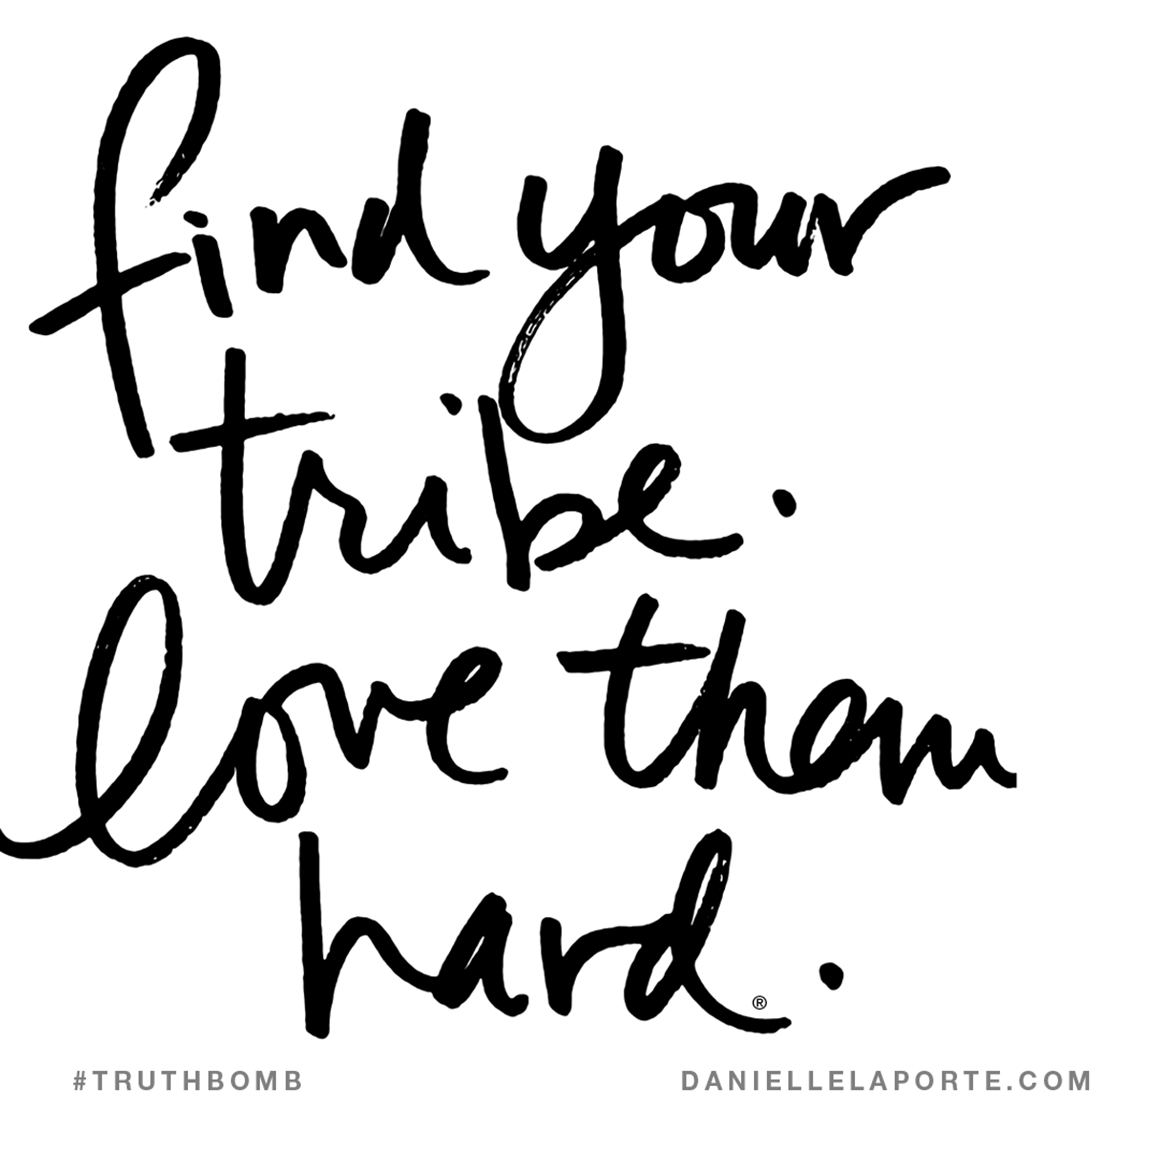 Find-your-tribe.-Love-them-hard.-And